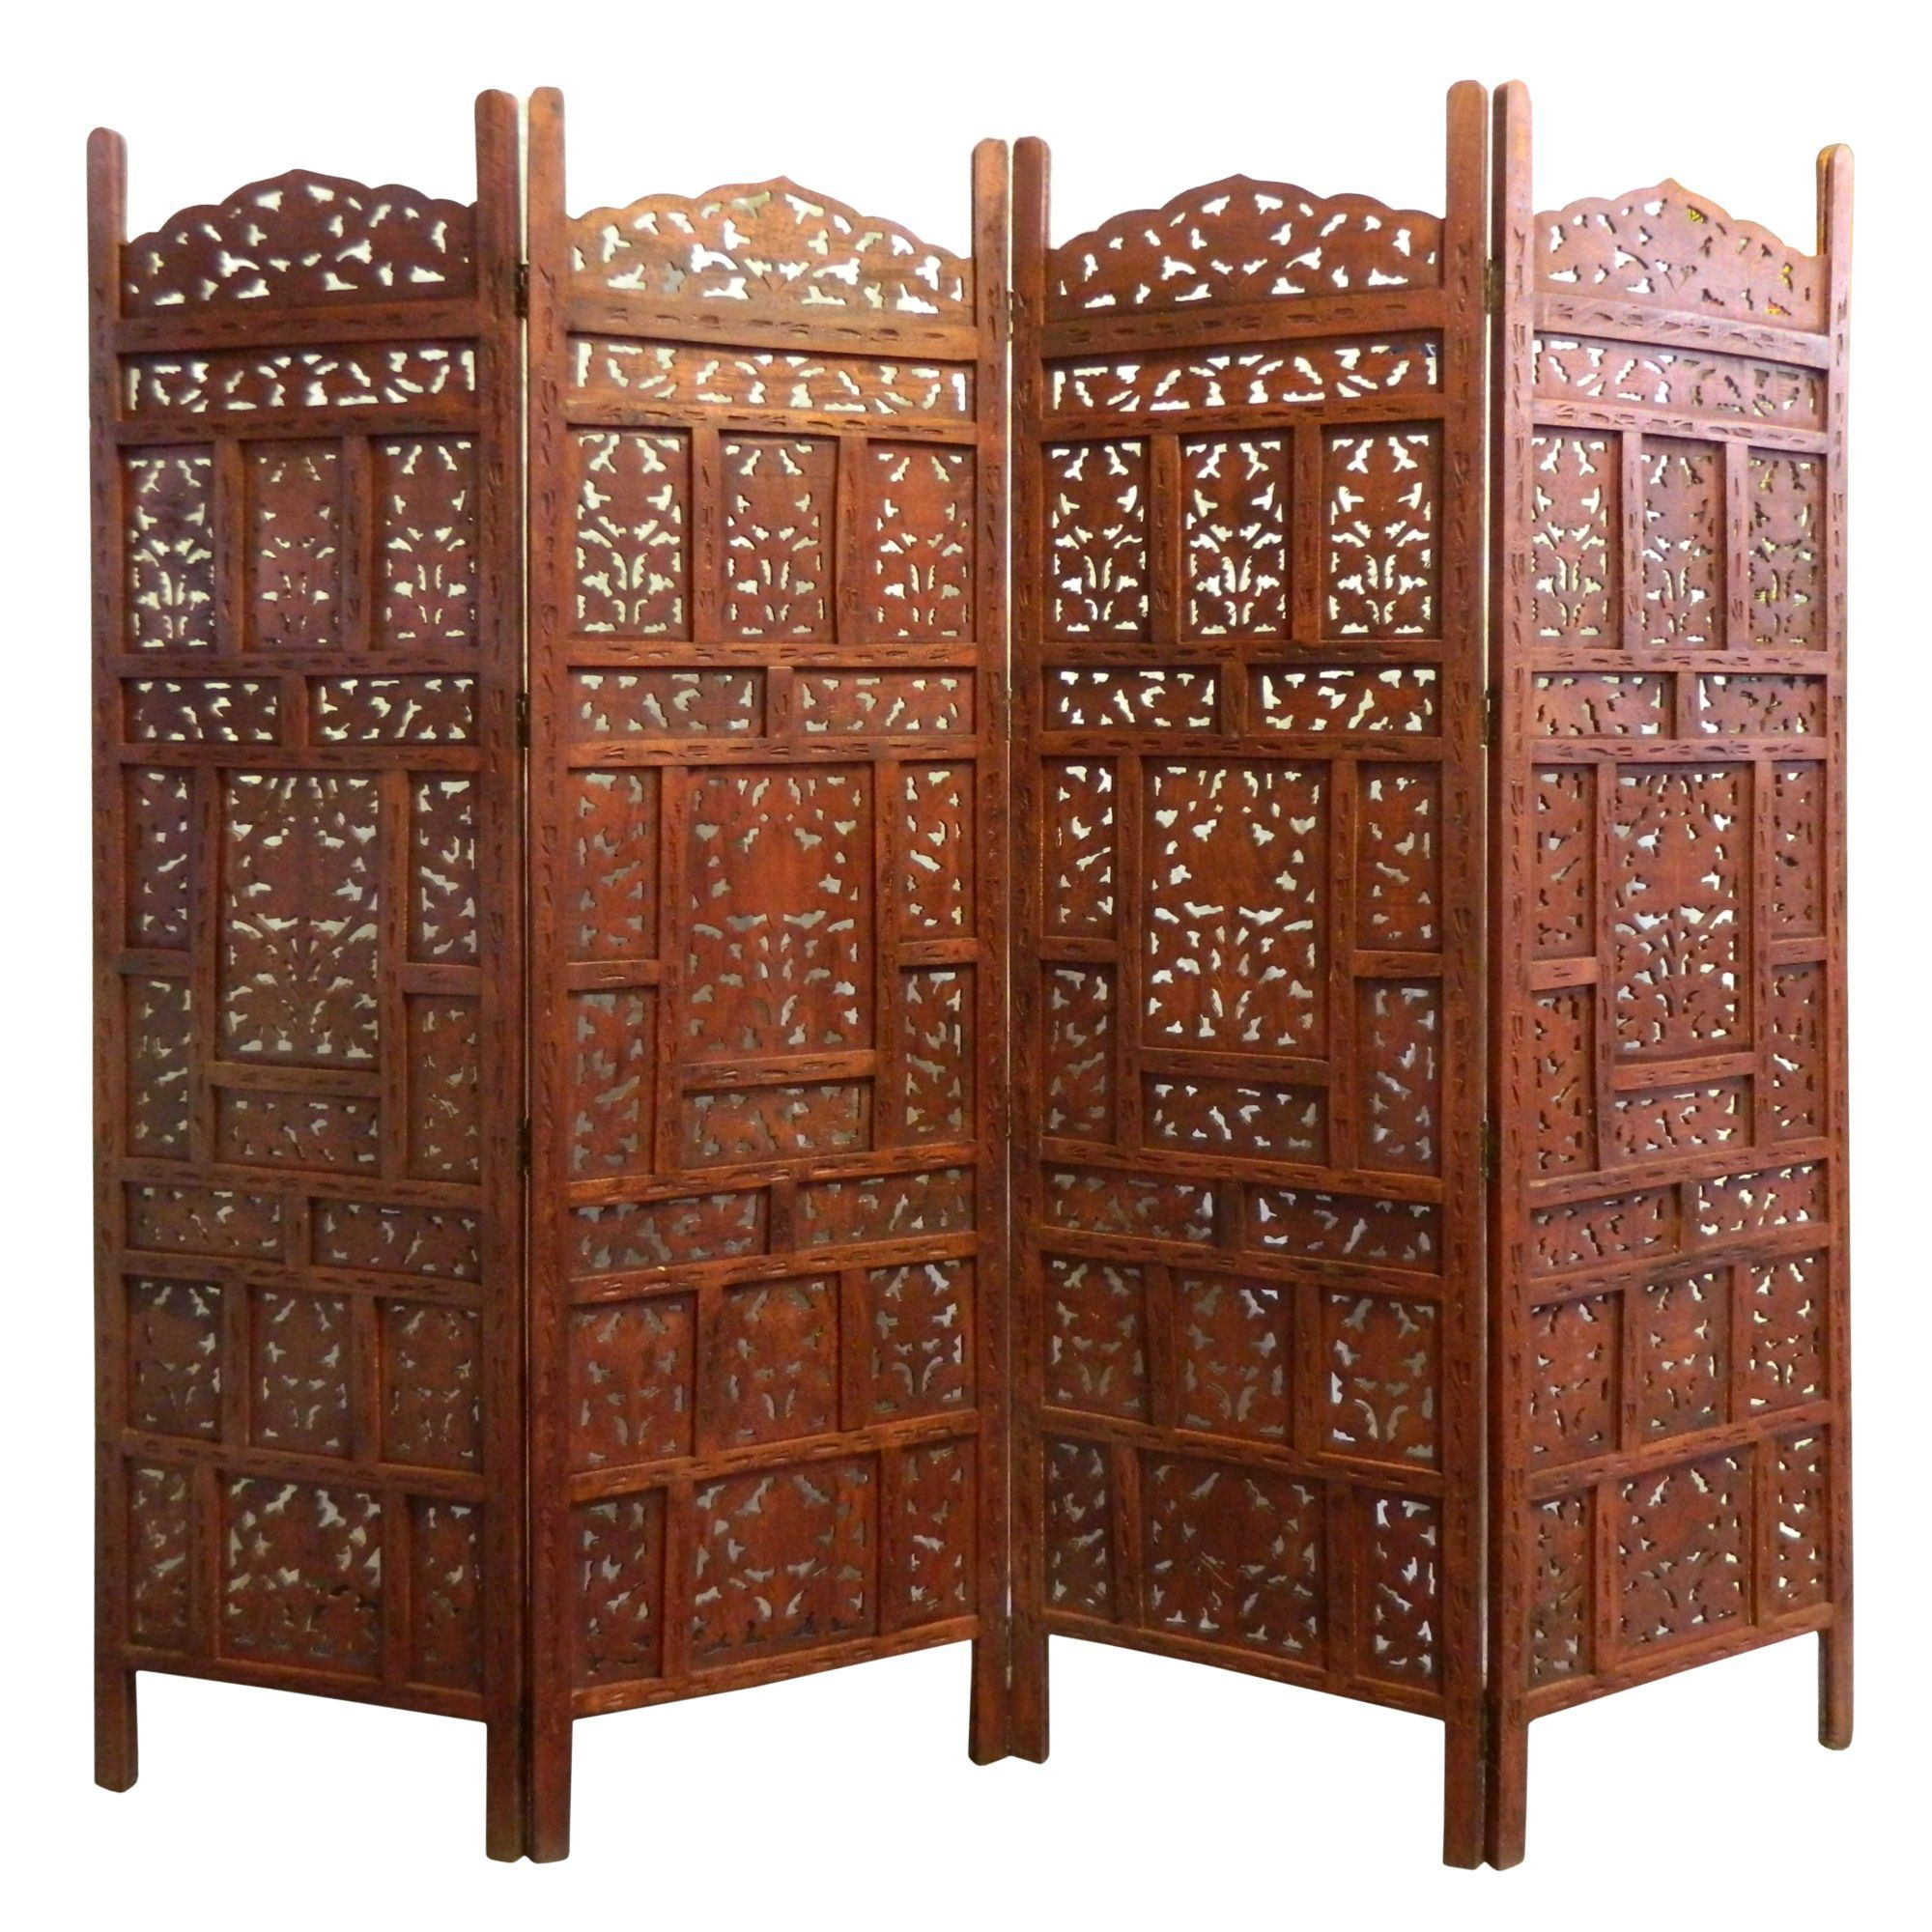 paravent jaipur bois 200x182cm d cor feuille de vigne meuble indien d coration salon home. Black Bedroom Furniture Sets. Home Design Ideas